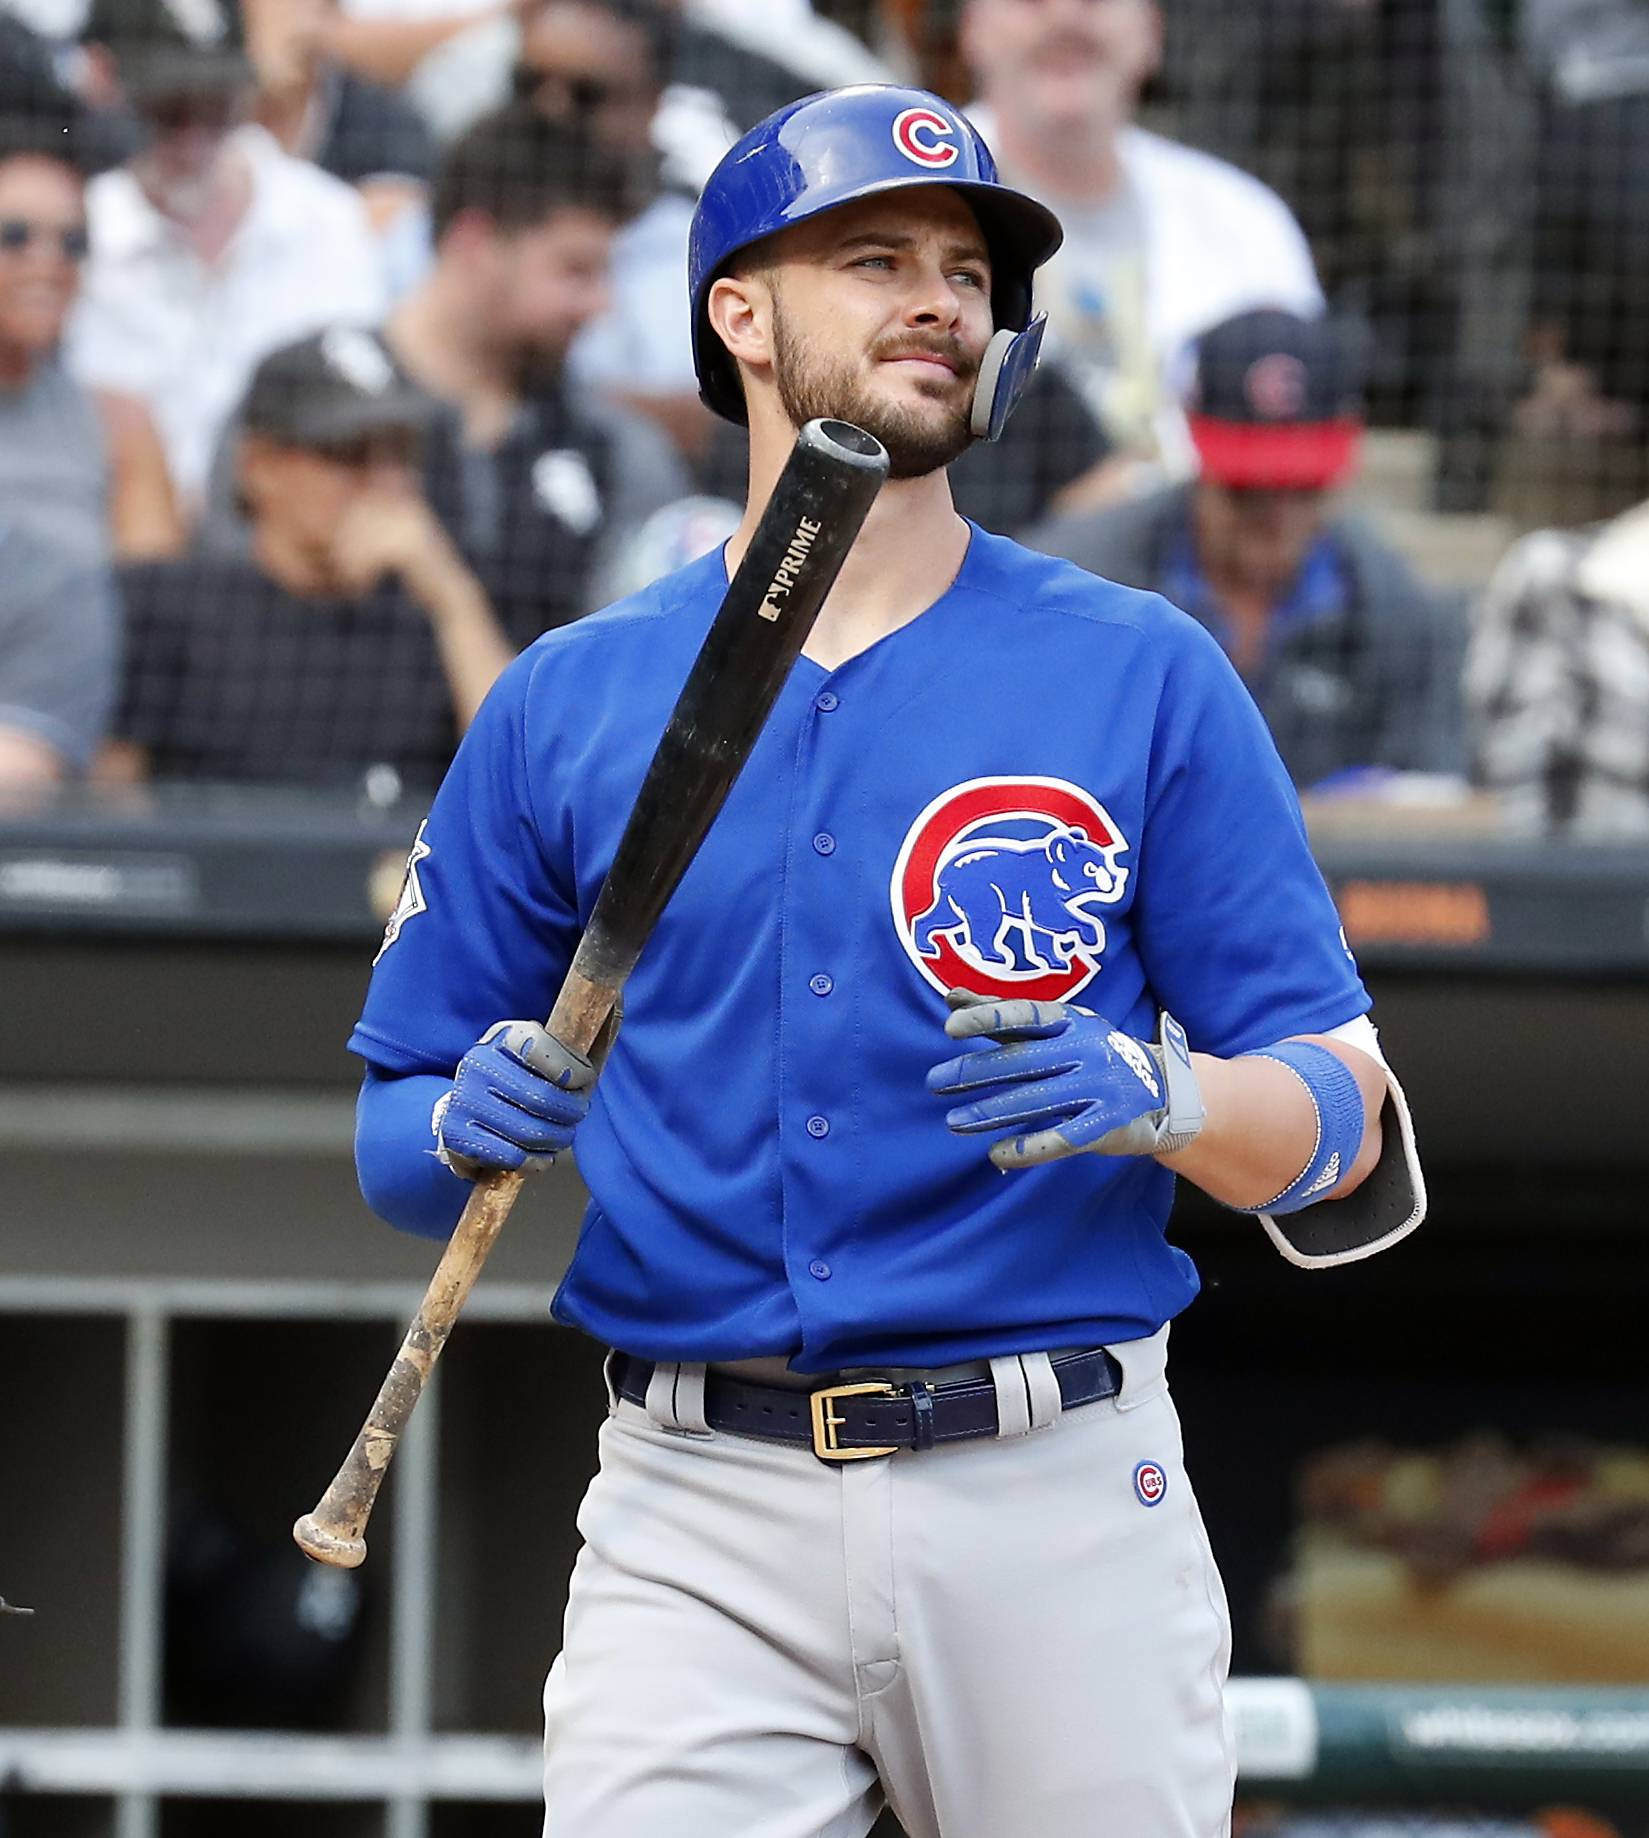 Now that the Angels' Mike Trout bypassed free agency, will other high-priced players like the Cubs' Kris Bryant consider a similar path?